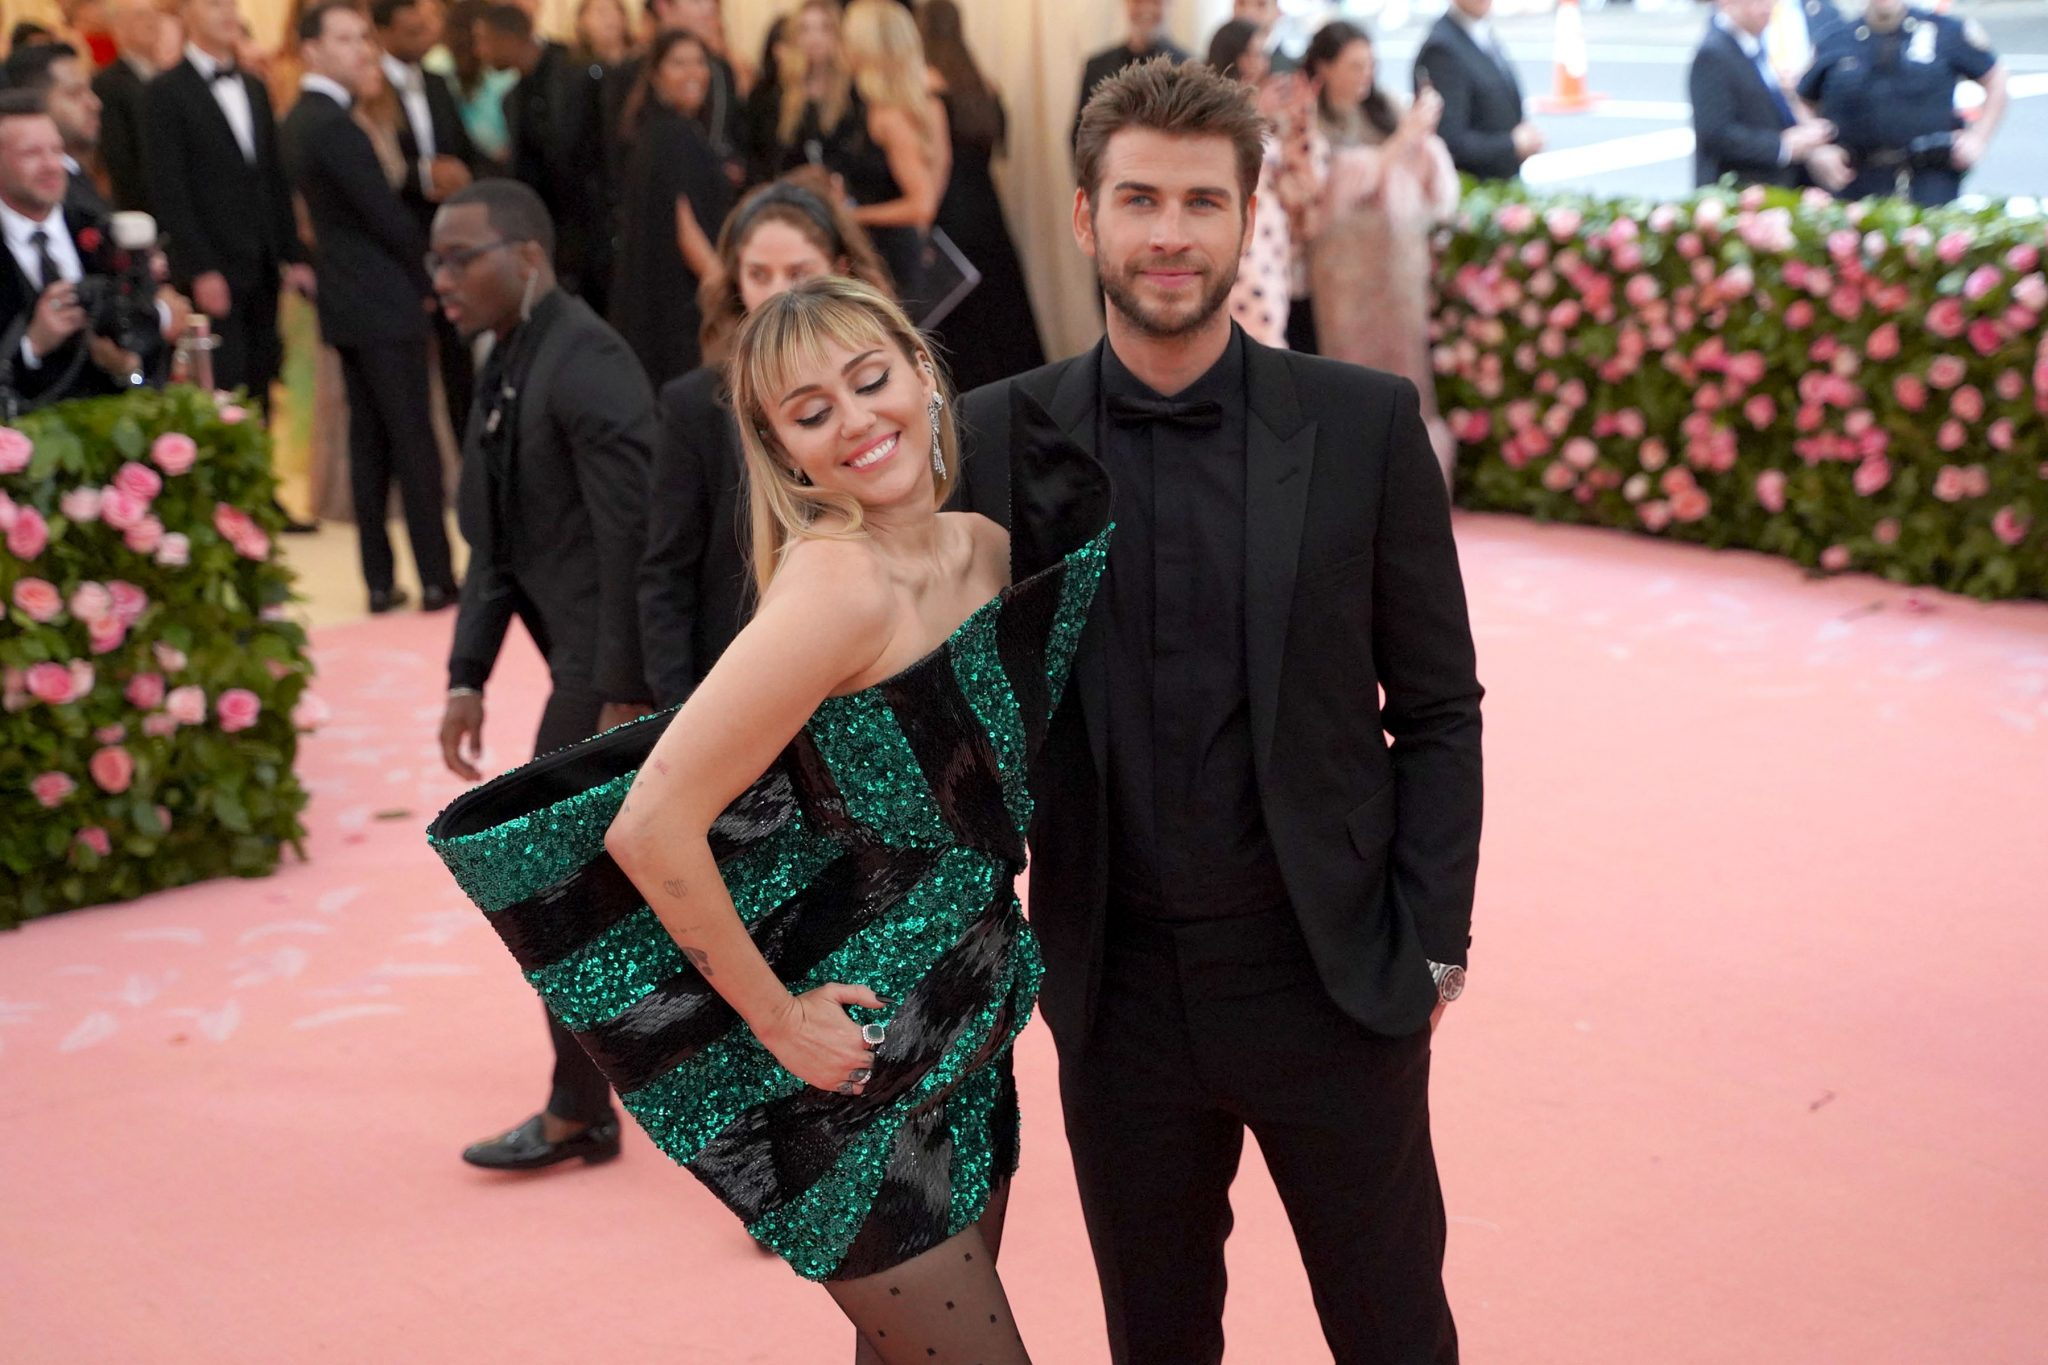 Miley Cyrus Wedding.Miley Cyrus And Liam Hemsworth Split After Nine Months Of Marriage